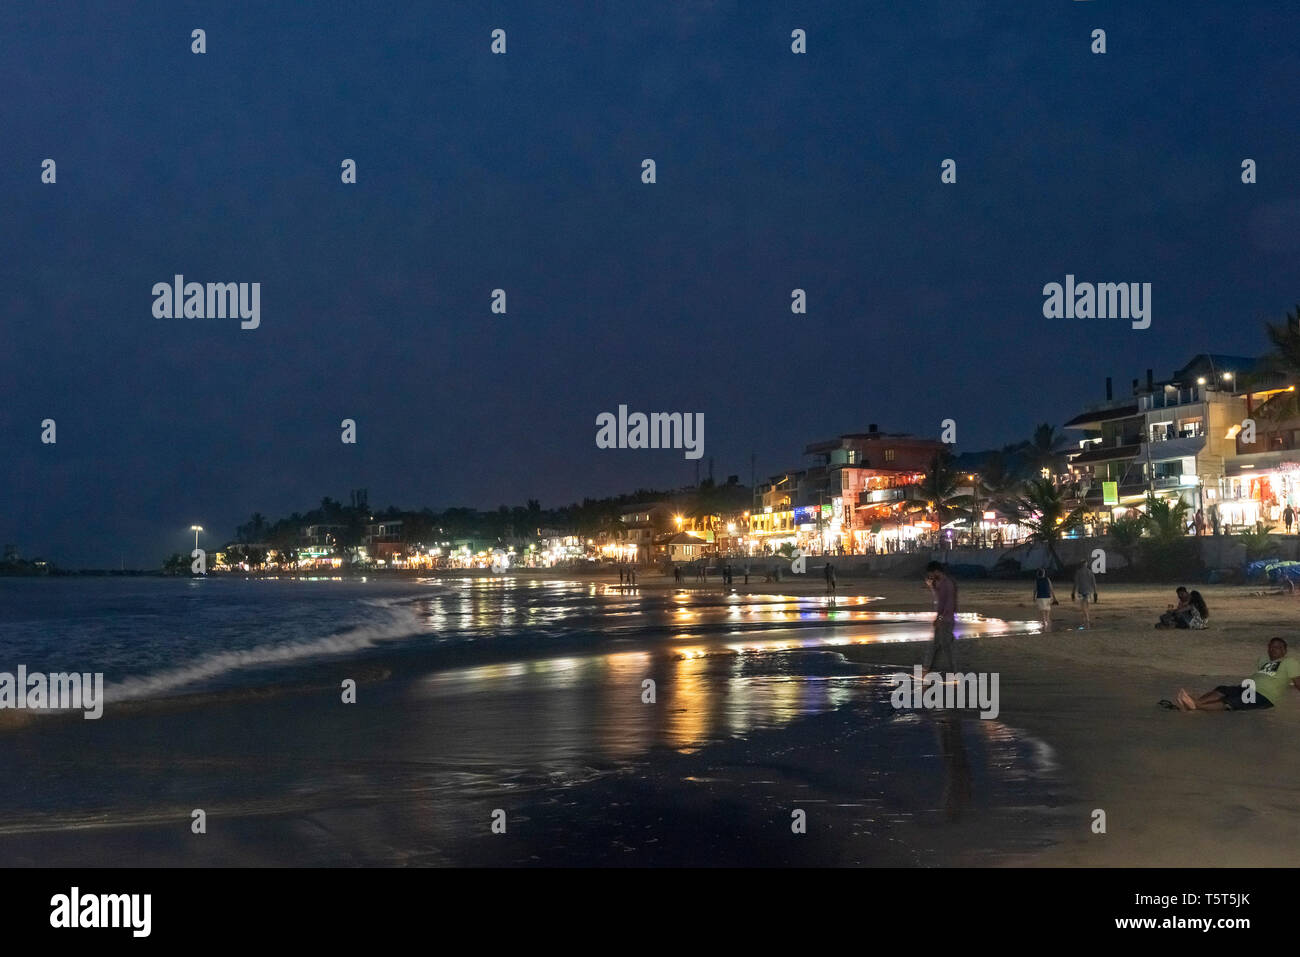 Horizontal view of Lighthouse beach in Kovalam Kerala at night, India. - Stock Image